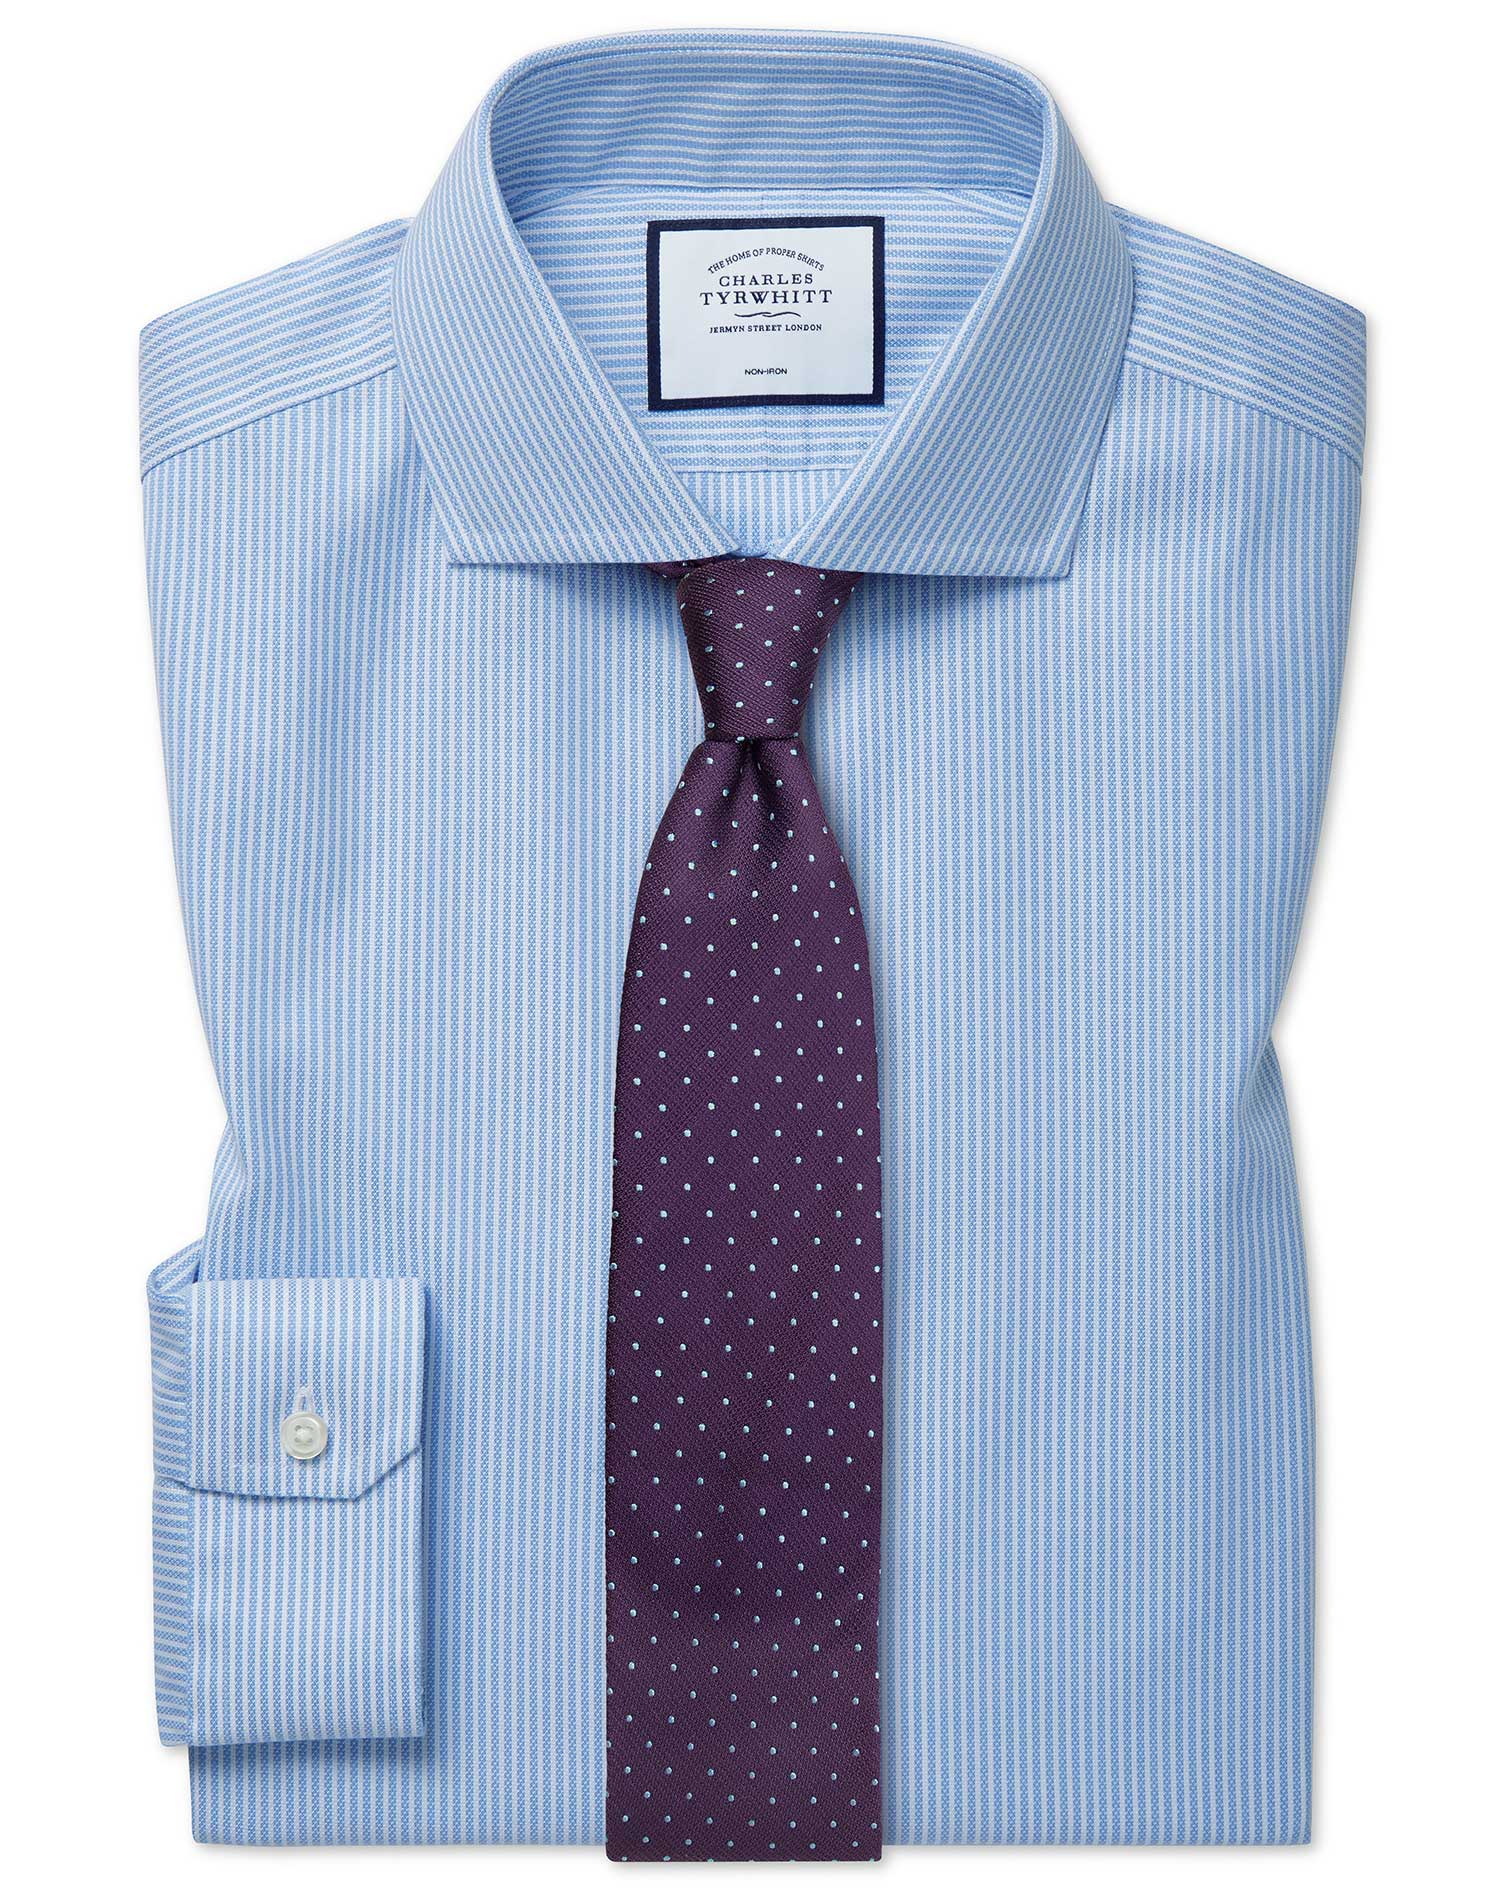 Super Slim Fit Cutaway Non-Iron Cotton Stretch Oxford Sky Blue Stripe Formal Shirt Single Cuff Size